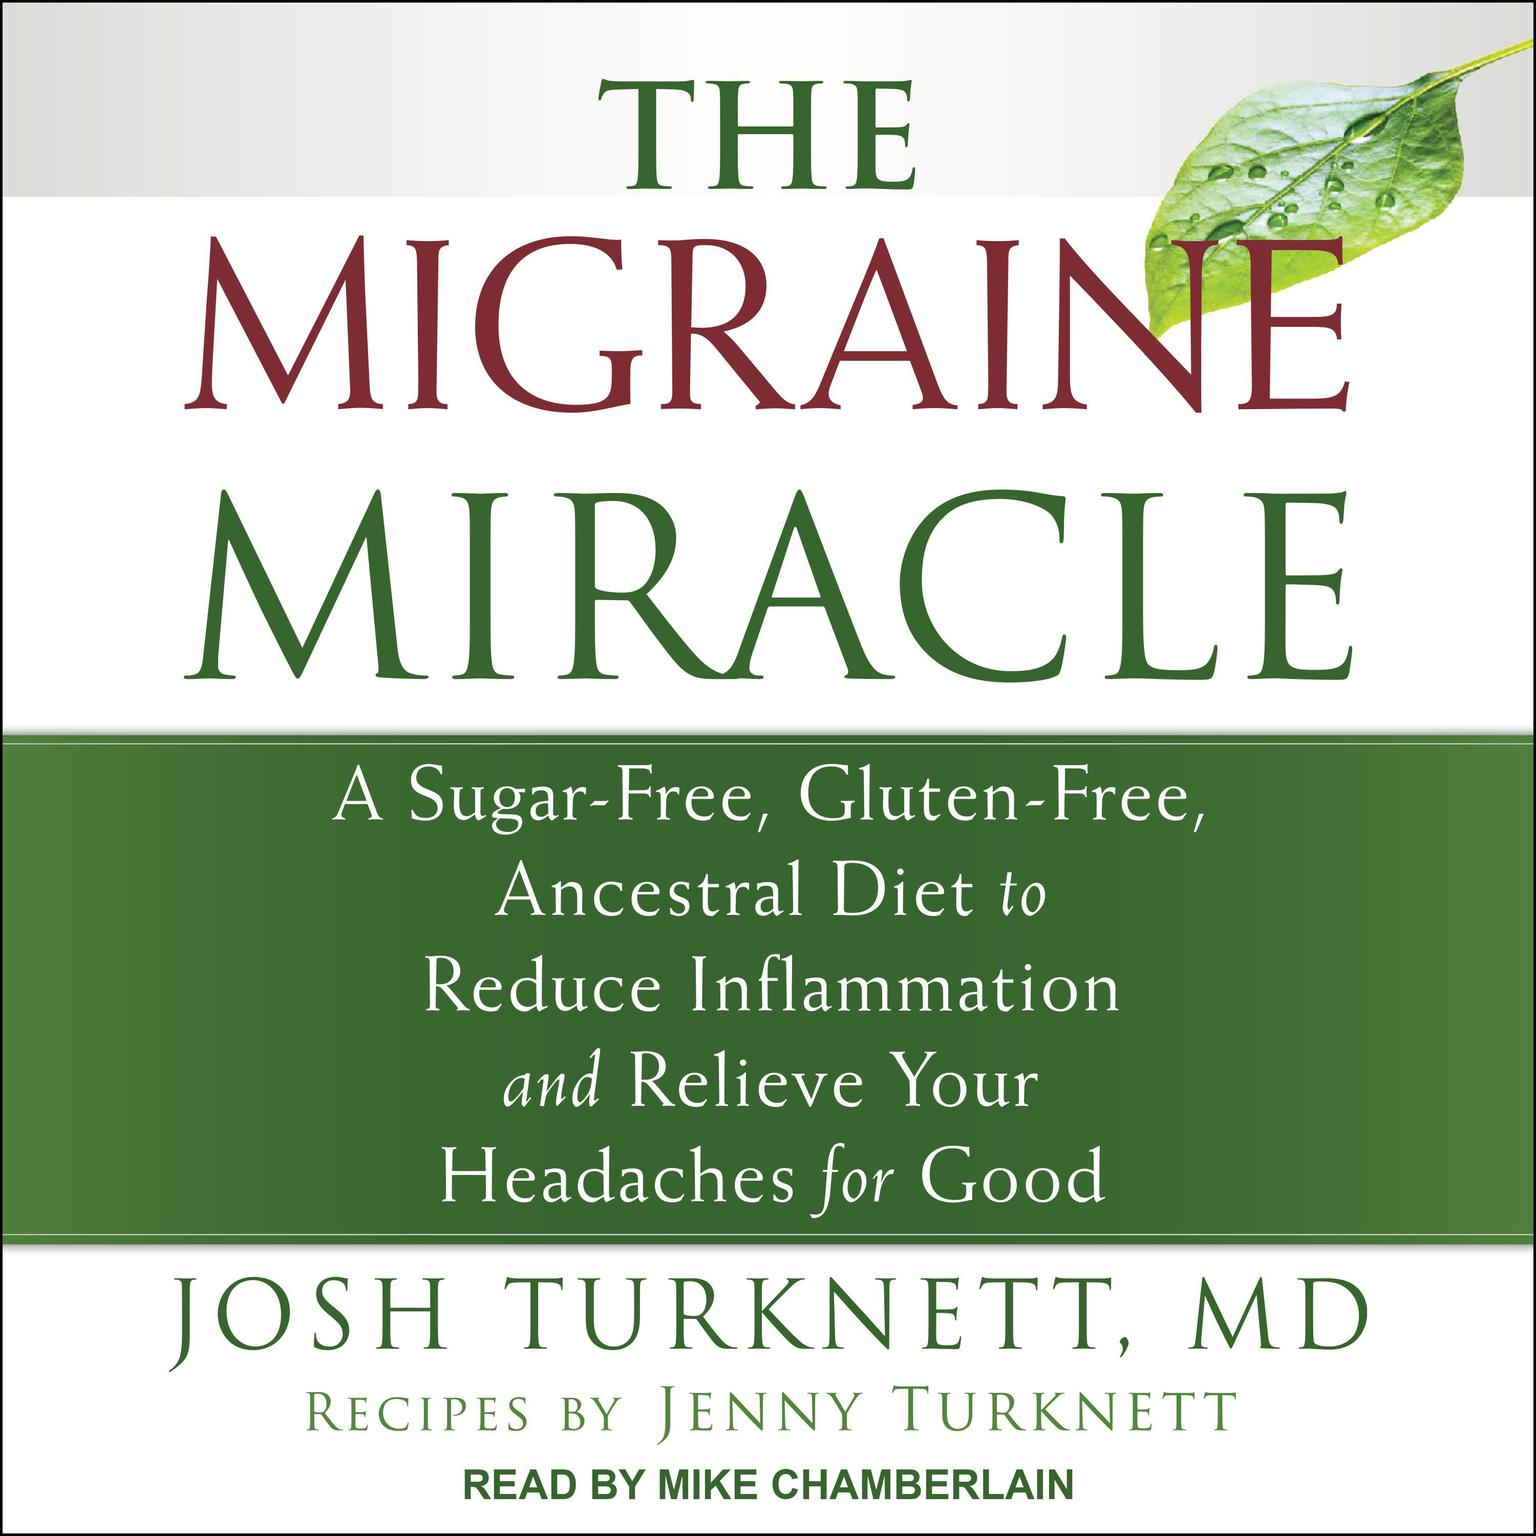 The Migraine Miracle: A Sugar-Free, Gluten-Free, Ancestral Diet to Reduce Inflammation and Relieve Your Headaches for Good Audiobook, by Josh Turknett